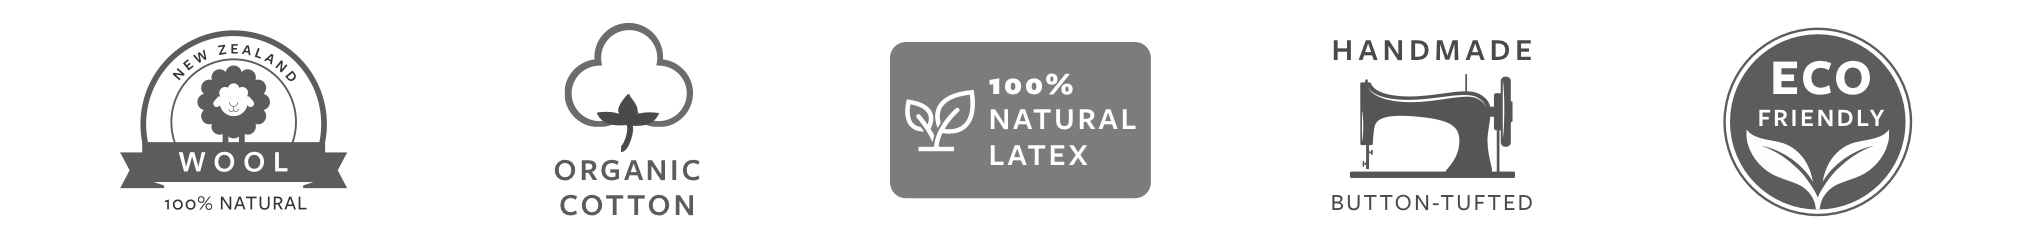 Natural Latex Mattress Topper Certifications